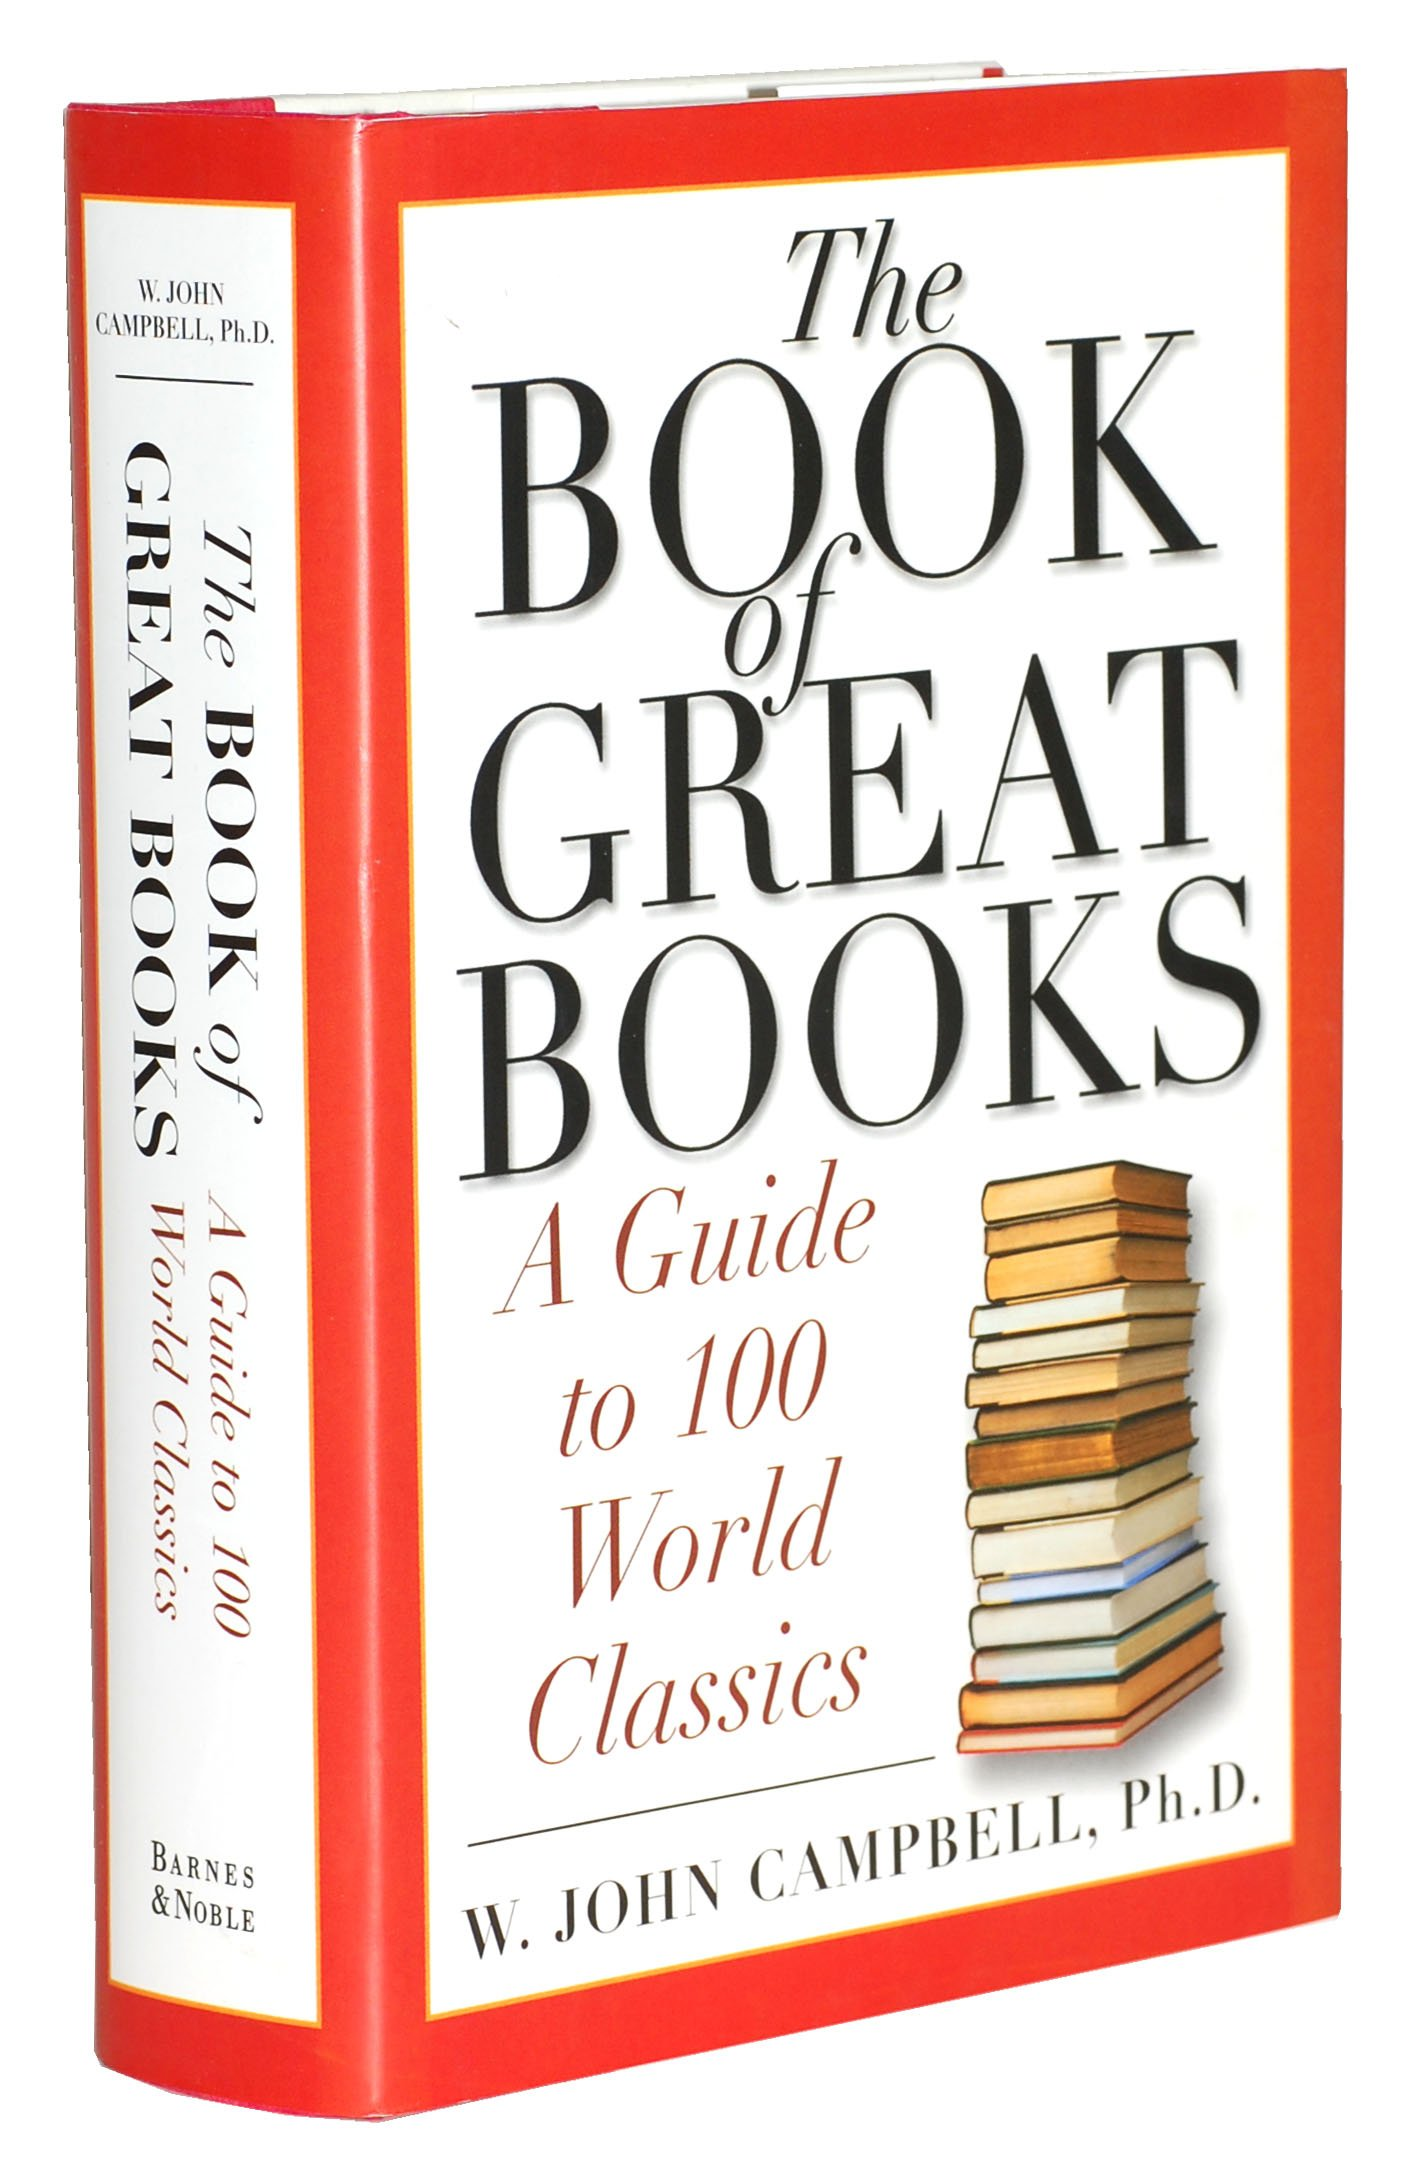 Animal farm literature guide table of contents ebook array the book of great books a guide to 100 world classics w john rh fandeluxe Choice Image